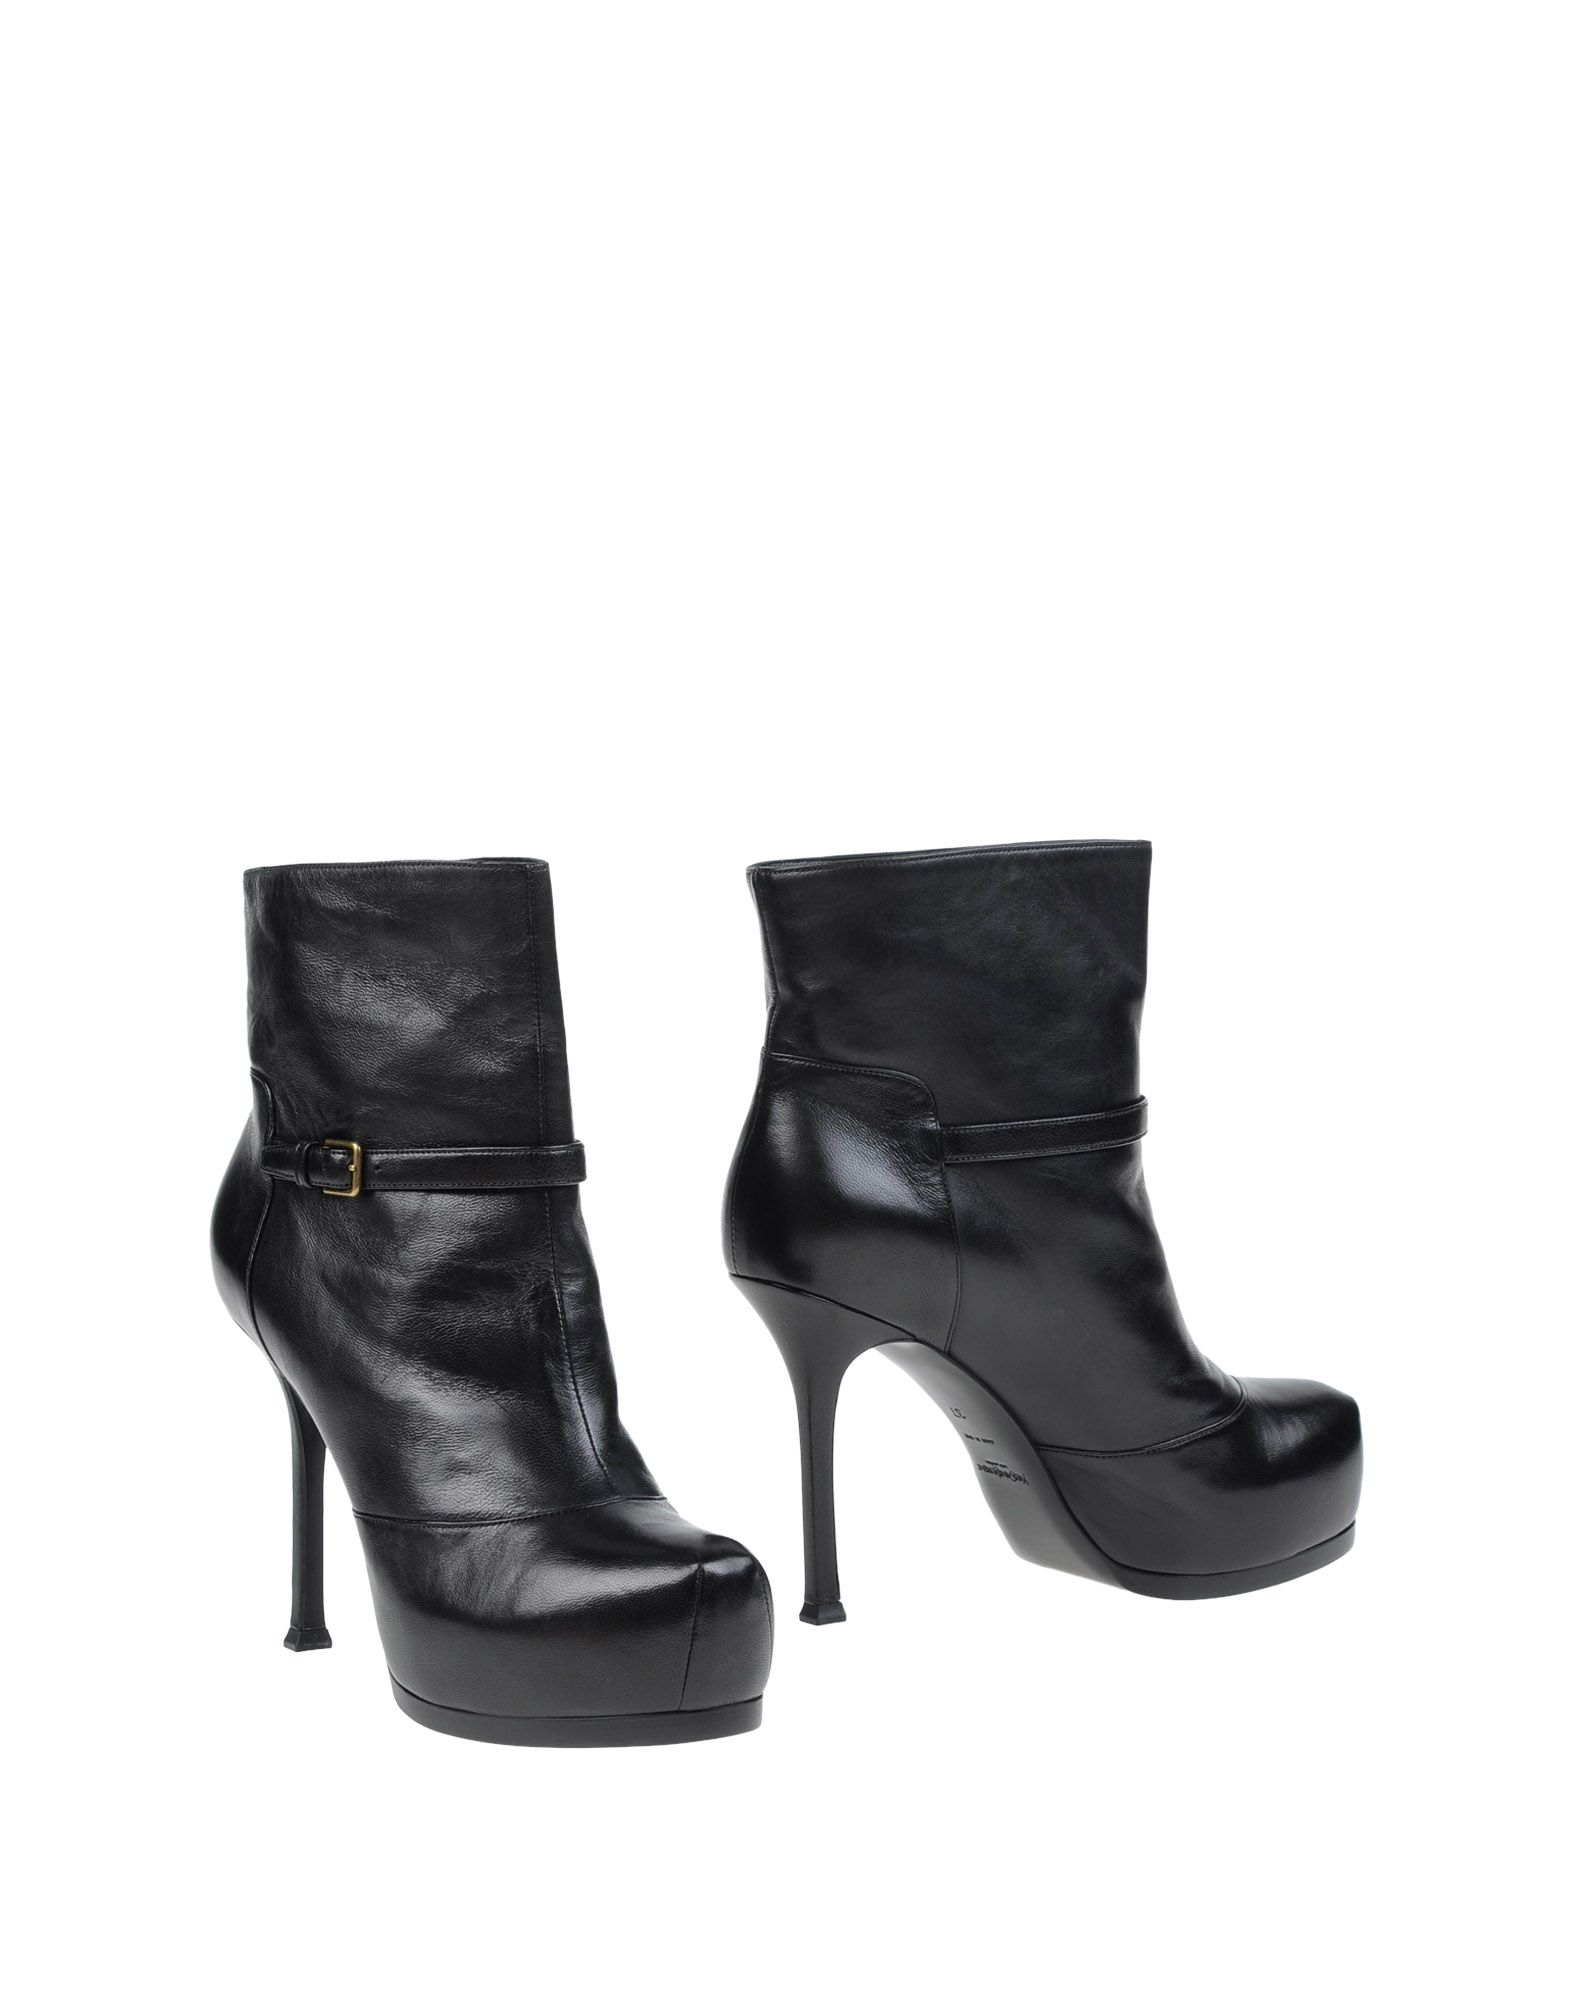 buy cheap best place Yves Saint Laurent Leather Round-Toe Ankle Boots low cost cheap price sale nicekicks outlet cheapest price cheap 2015 new db2zwsH8YJ